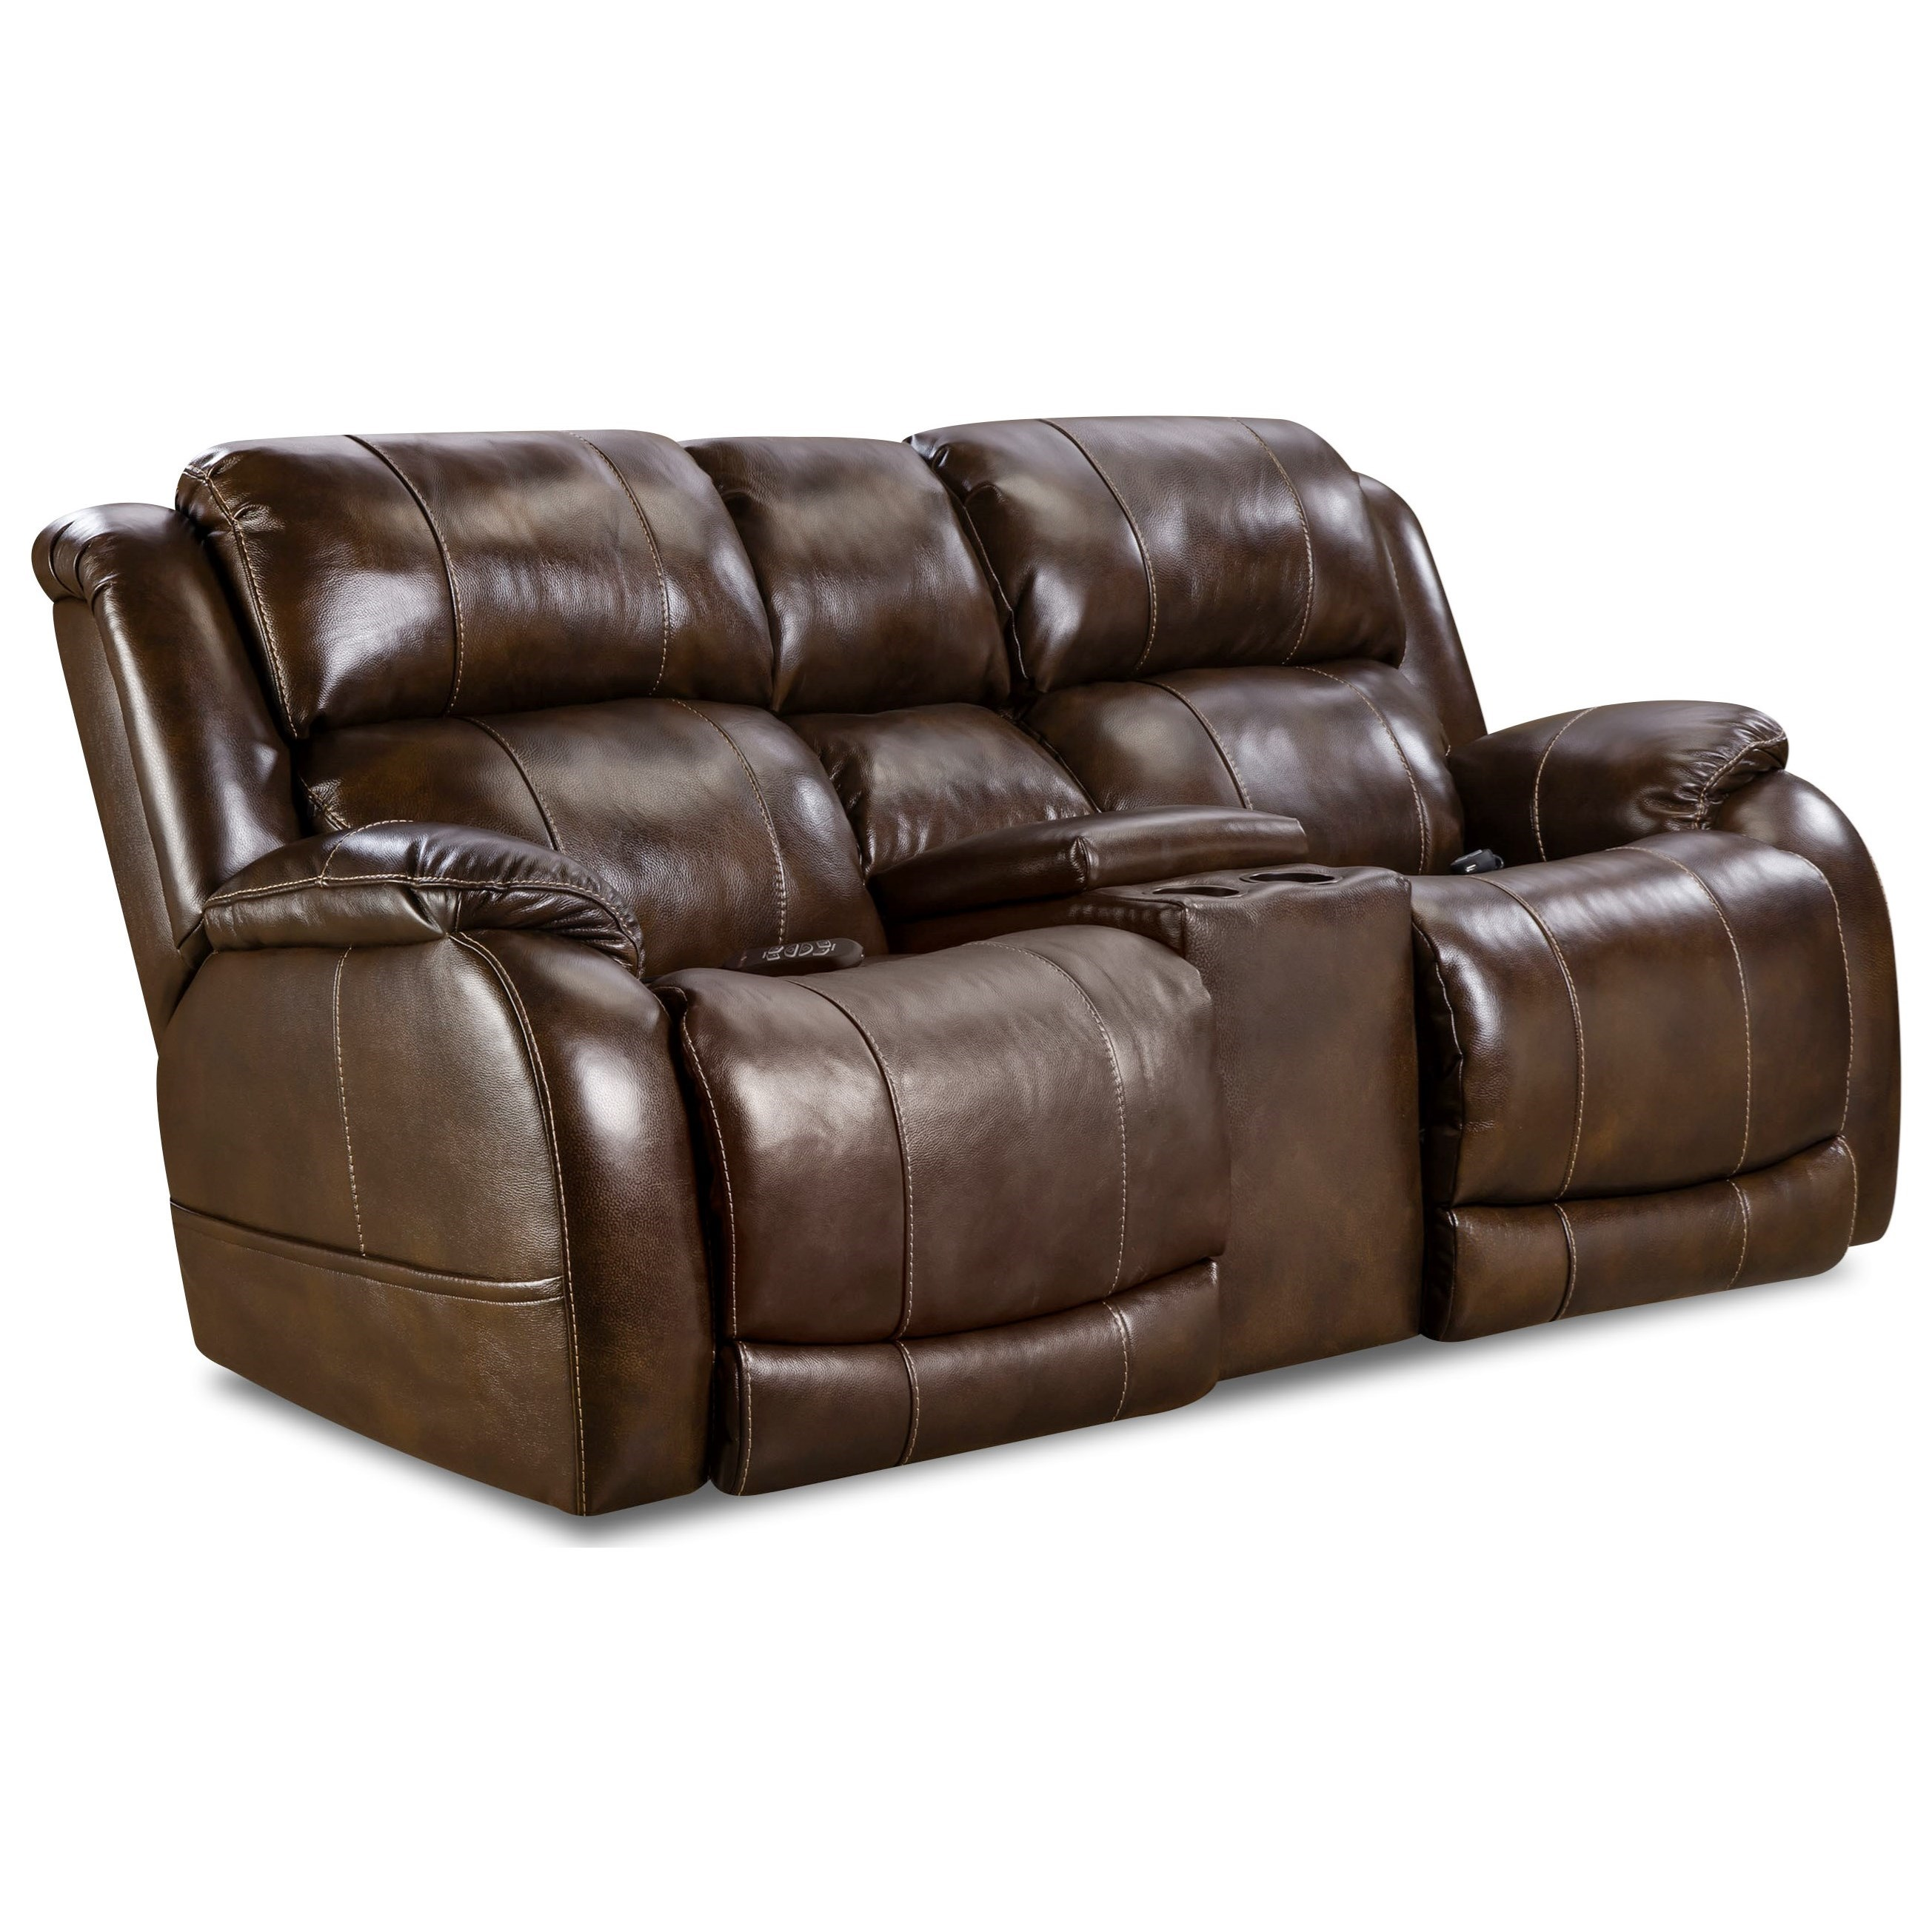 170 Collection Power Reclining Console Loveseat by HomeStretch at Darvin Furniture